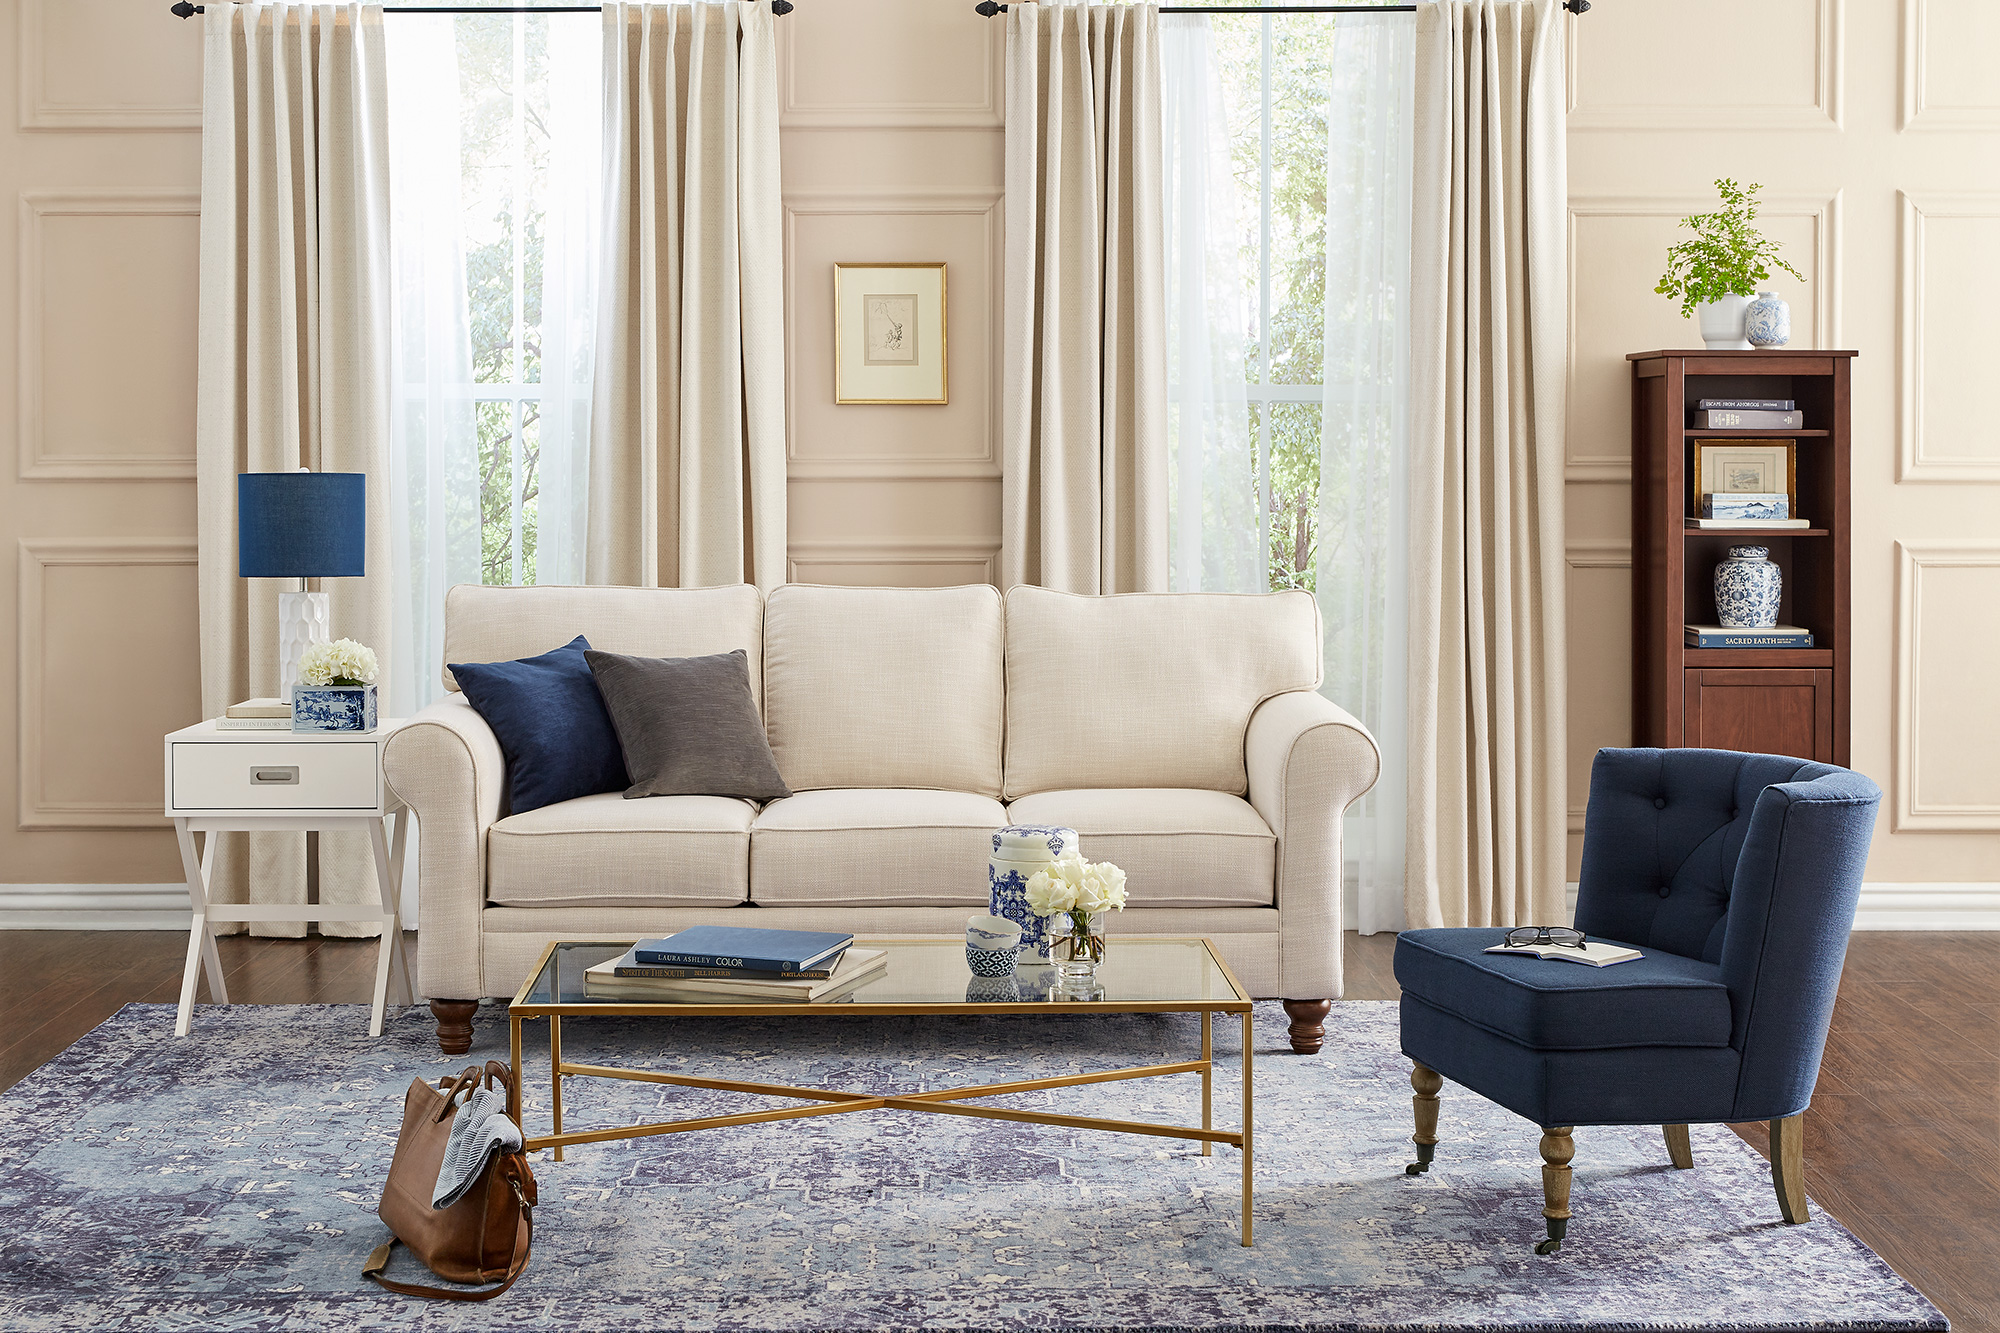 hot savings for accent chairs people ravenna home living better homes and gardens table multiple colors launches its own furnishings collection take peek the affordable items